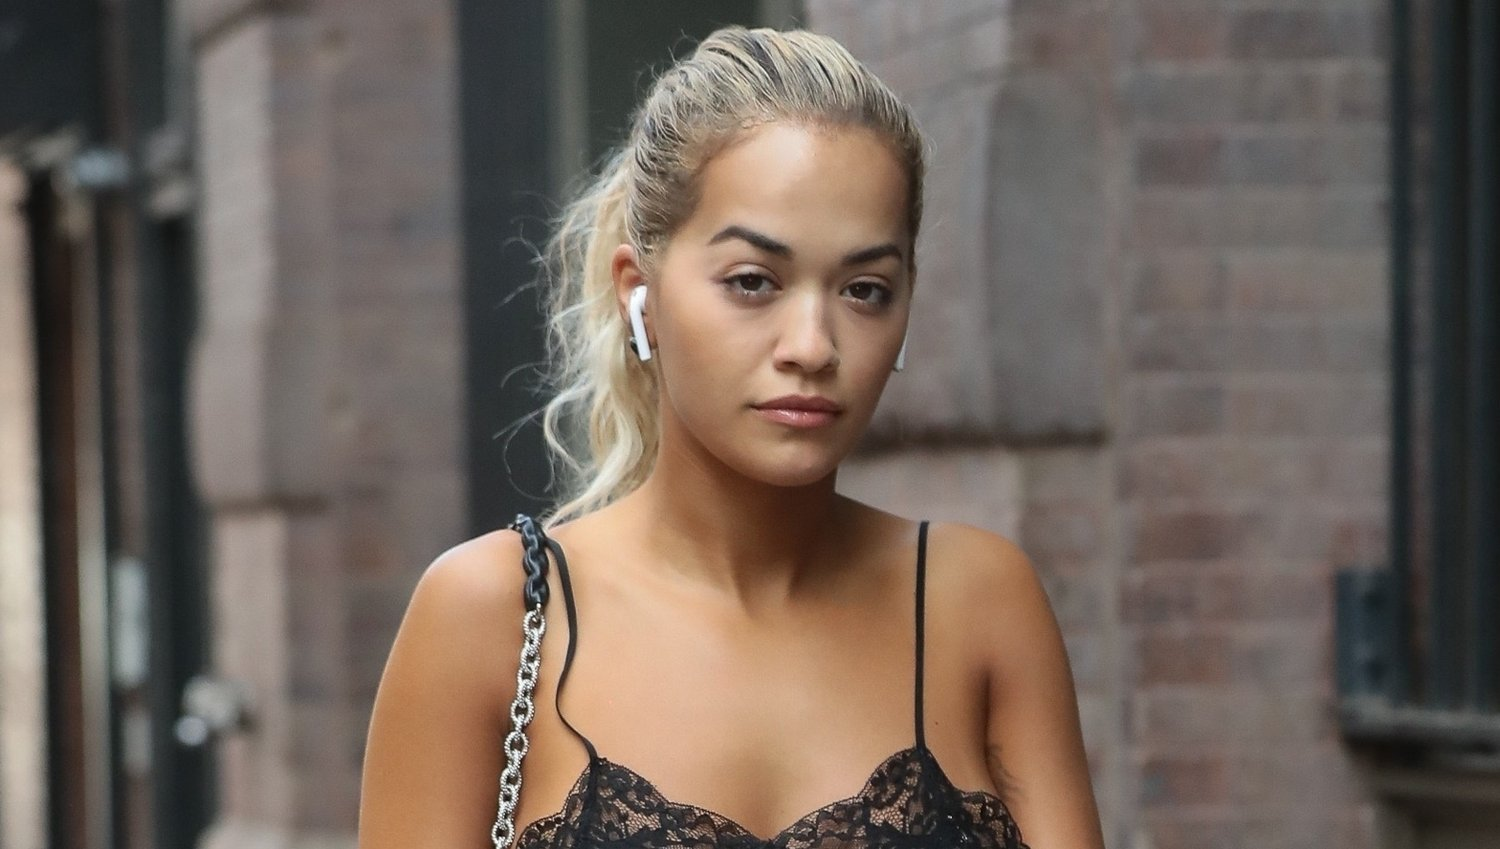 Celebrites Rita Ora nude (24 photos), Sexy, Leaked, Boobs, lingerie 2017